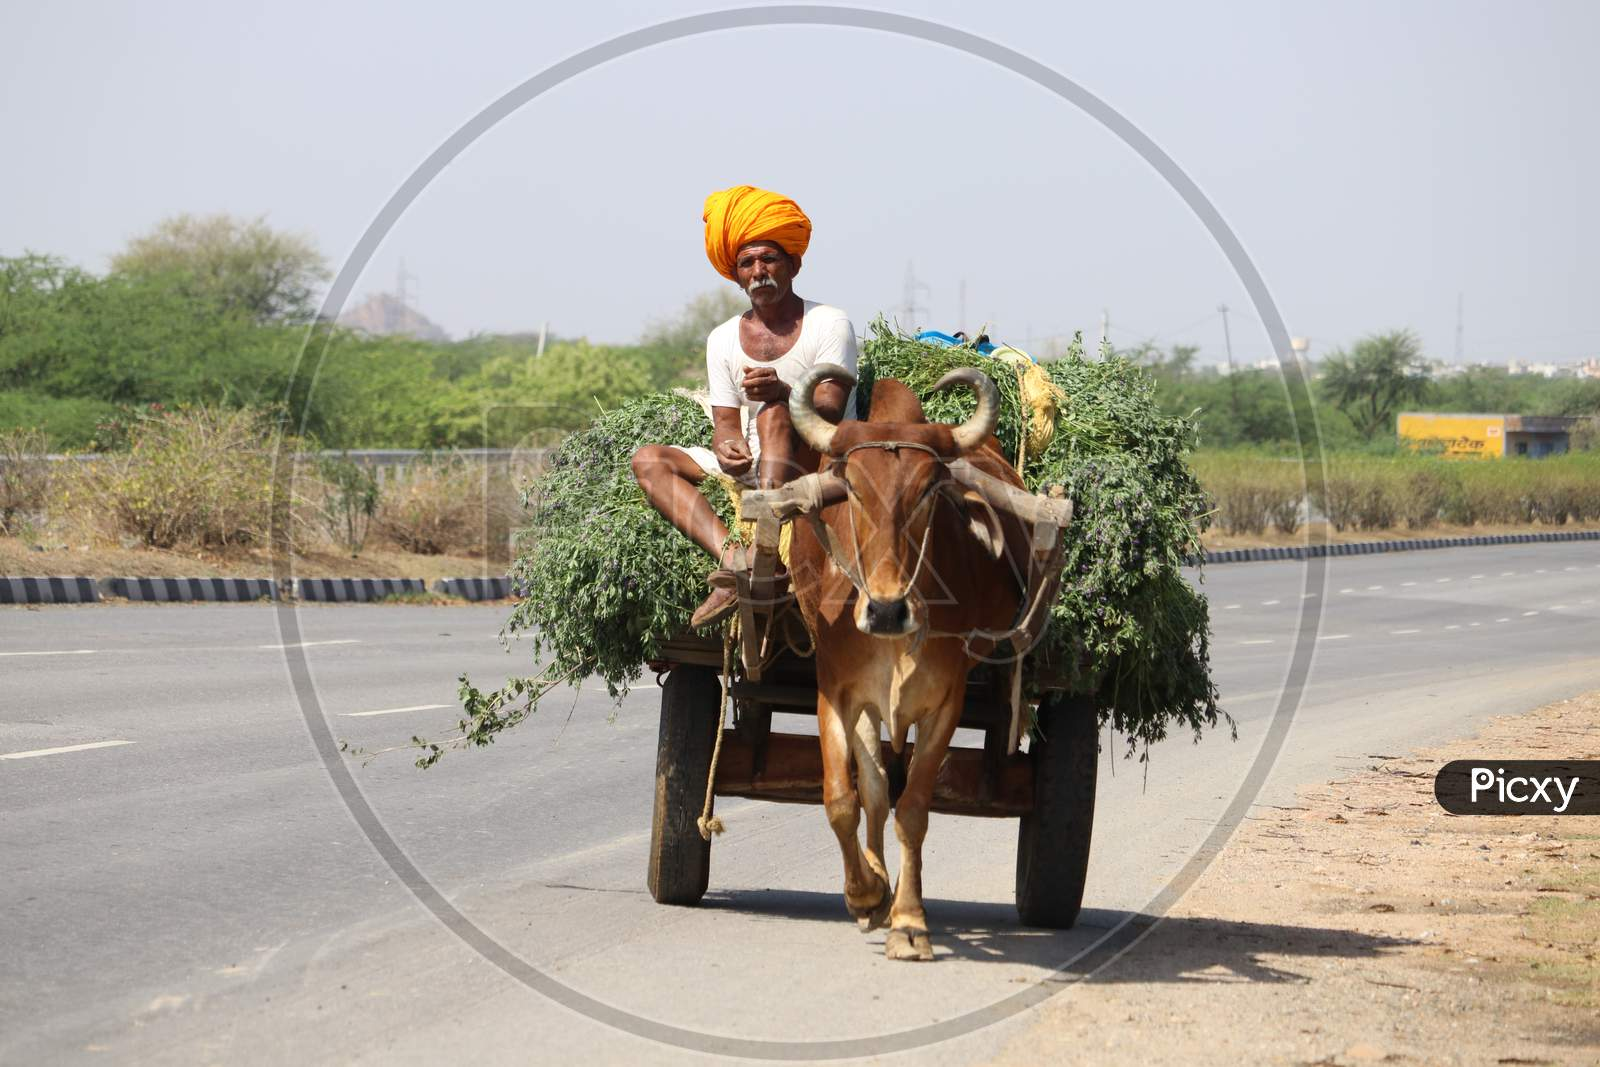 Indian Farmer Return From The Fields On A Bullock Cart On The Outskirts Of Ajmer, Rajasthan, India.